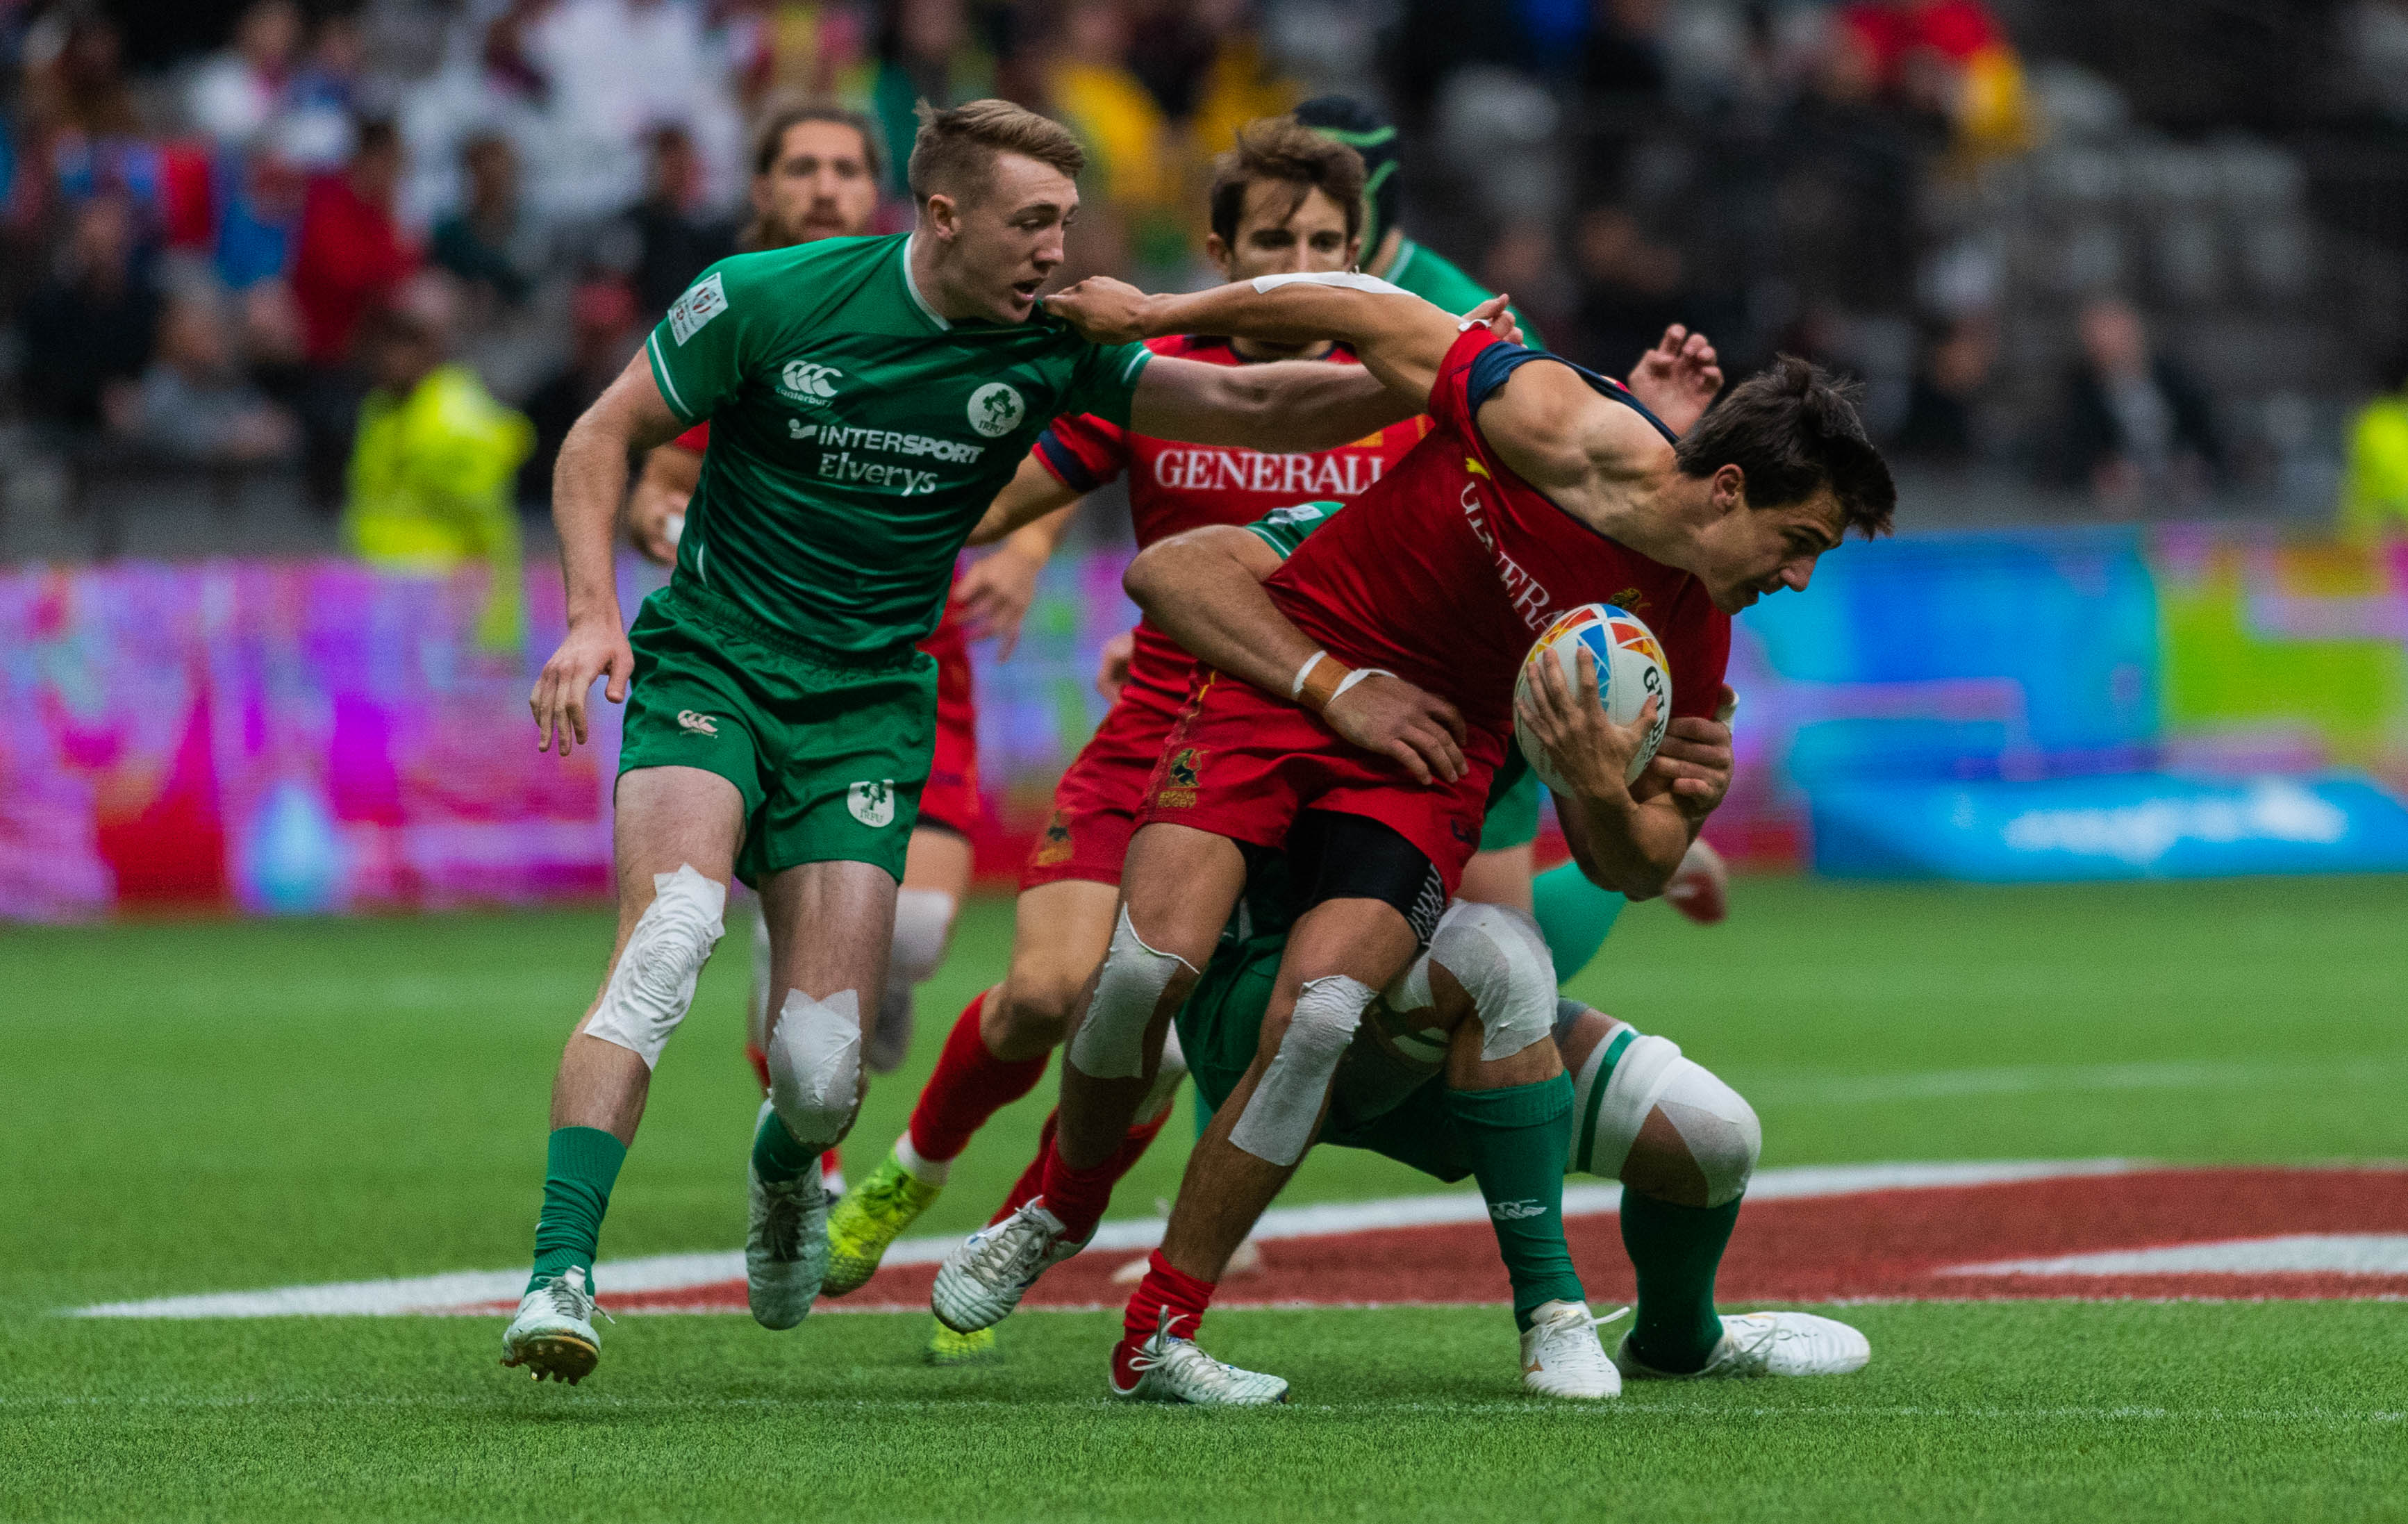 Rugby Sevens is a shortened, fast-paced code of Rugby.